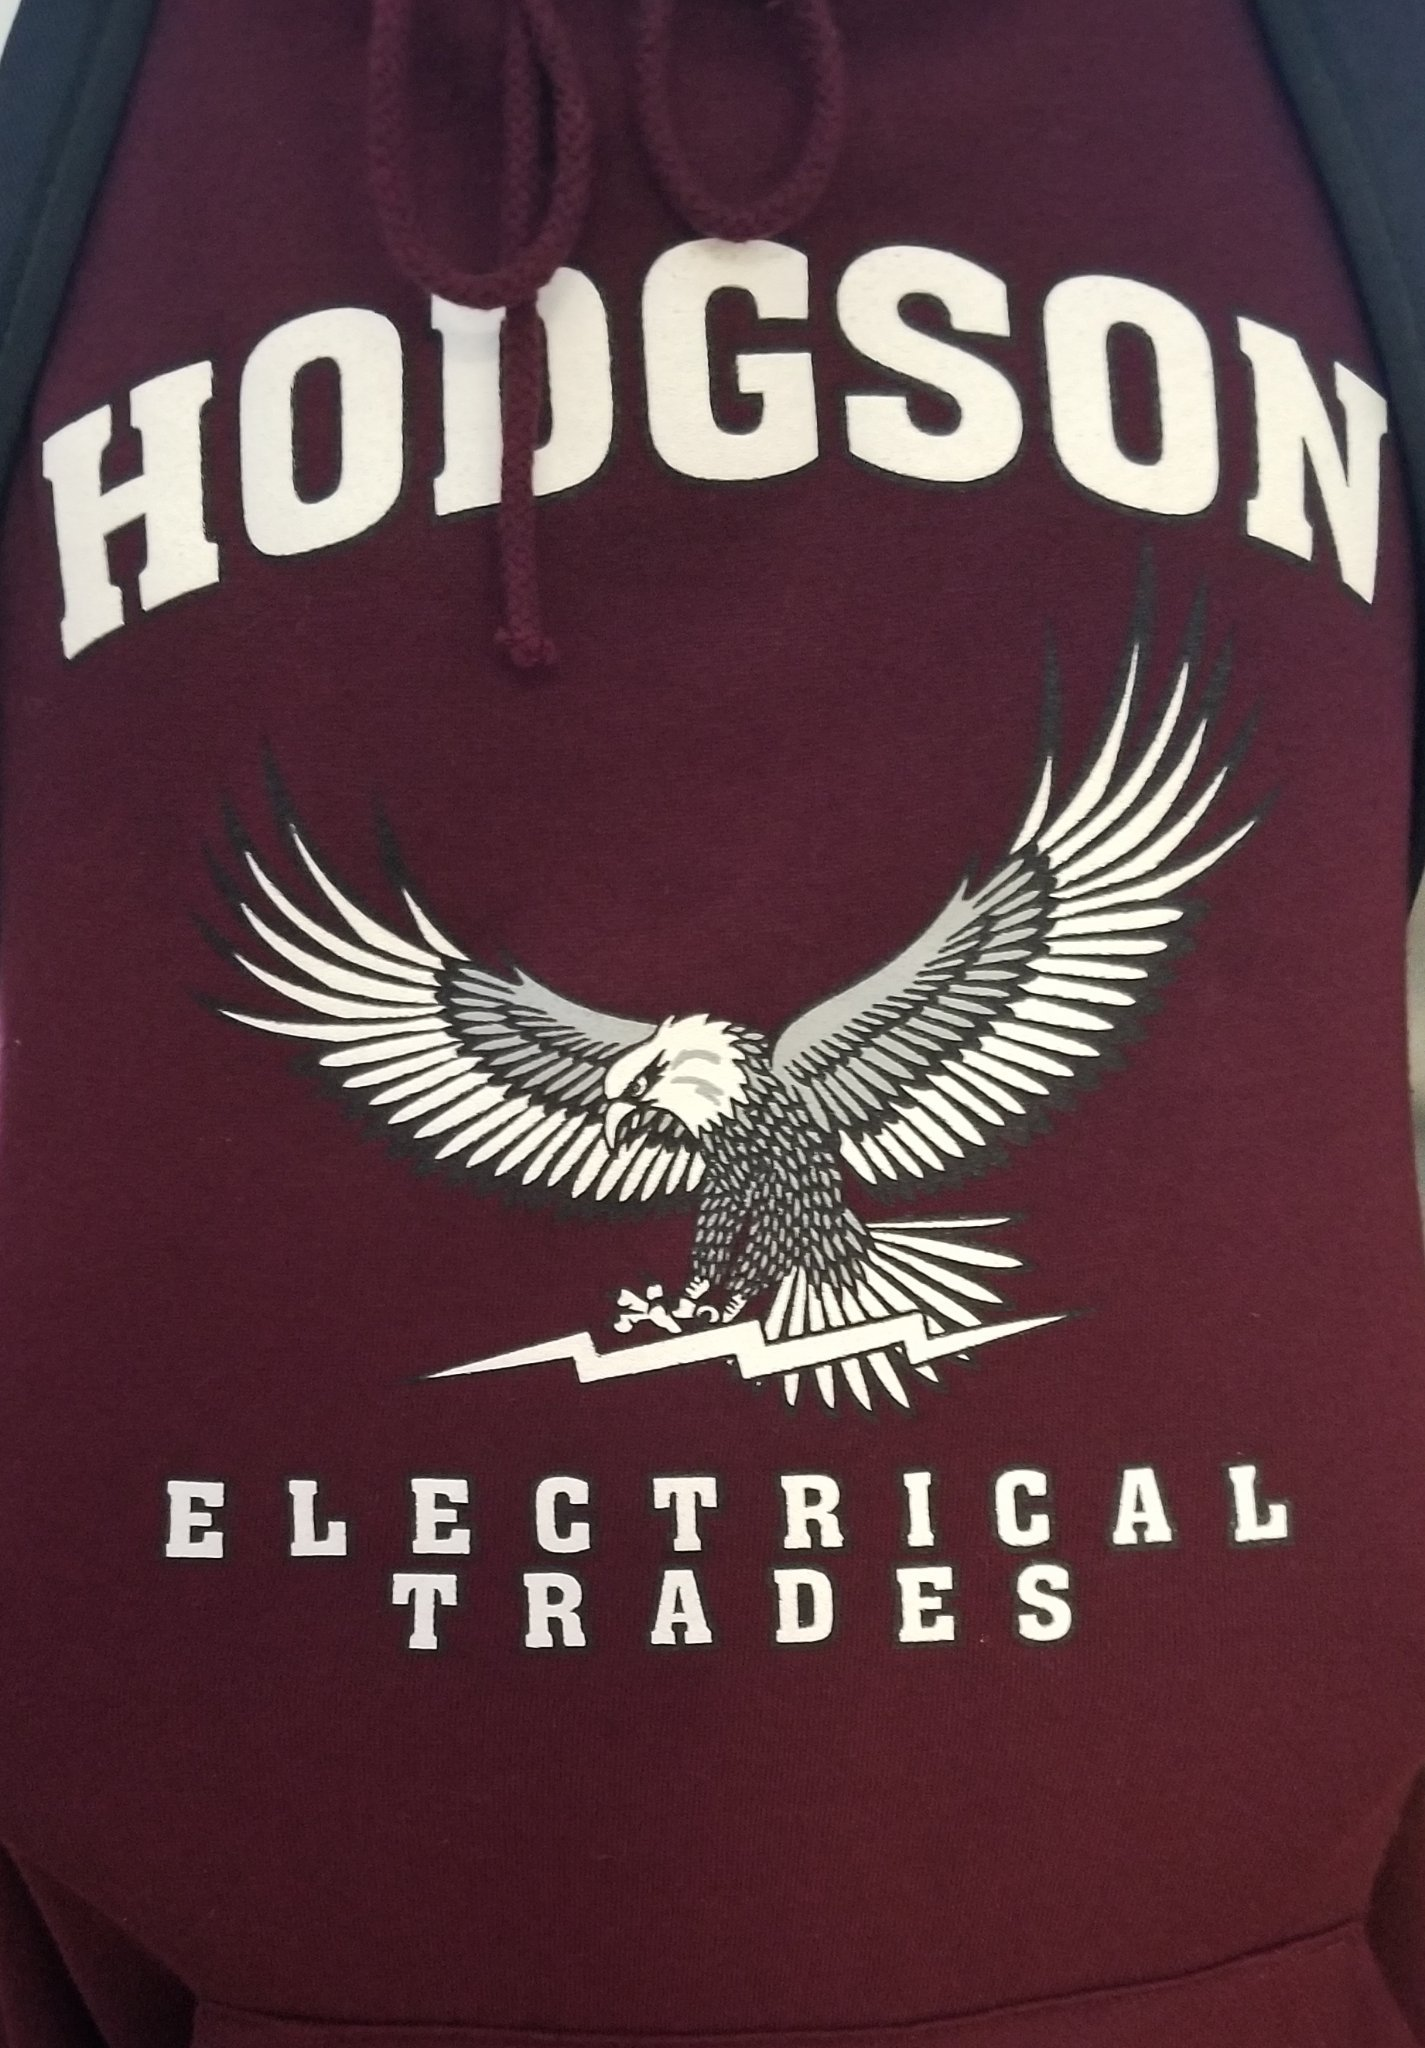 Electrical Trades